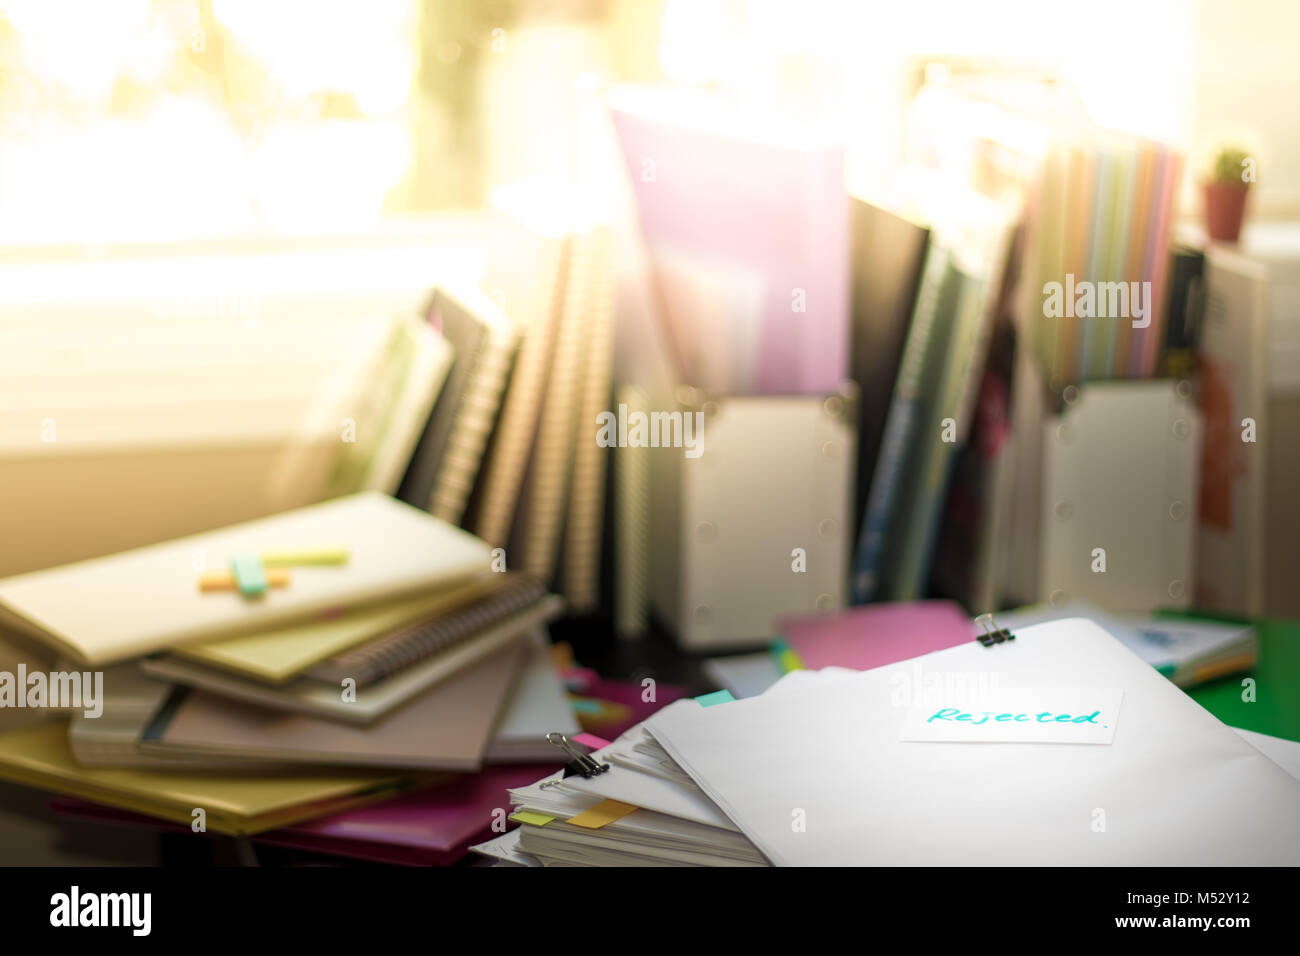 Rejected; Stack of Documents. Working or Studying at messy desk. - Stock Image